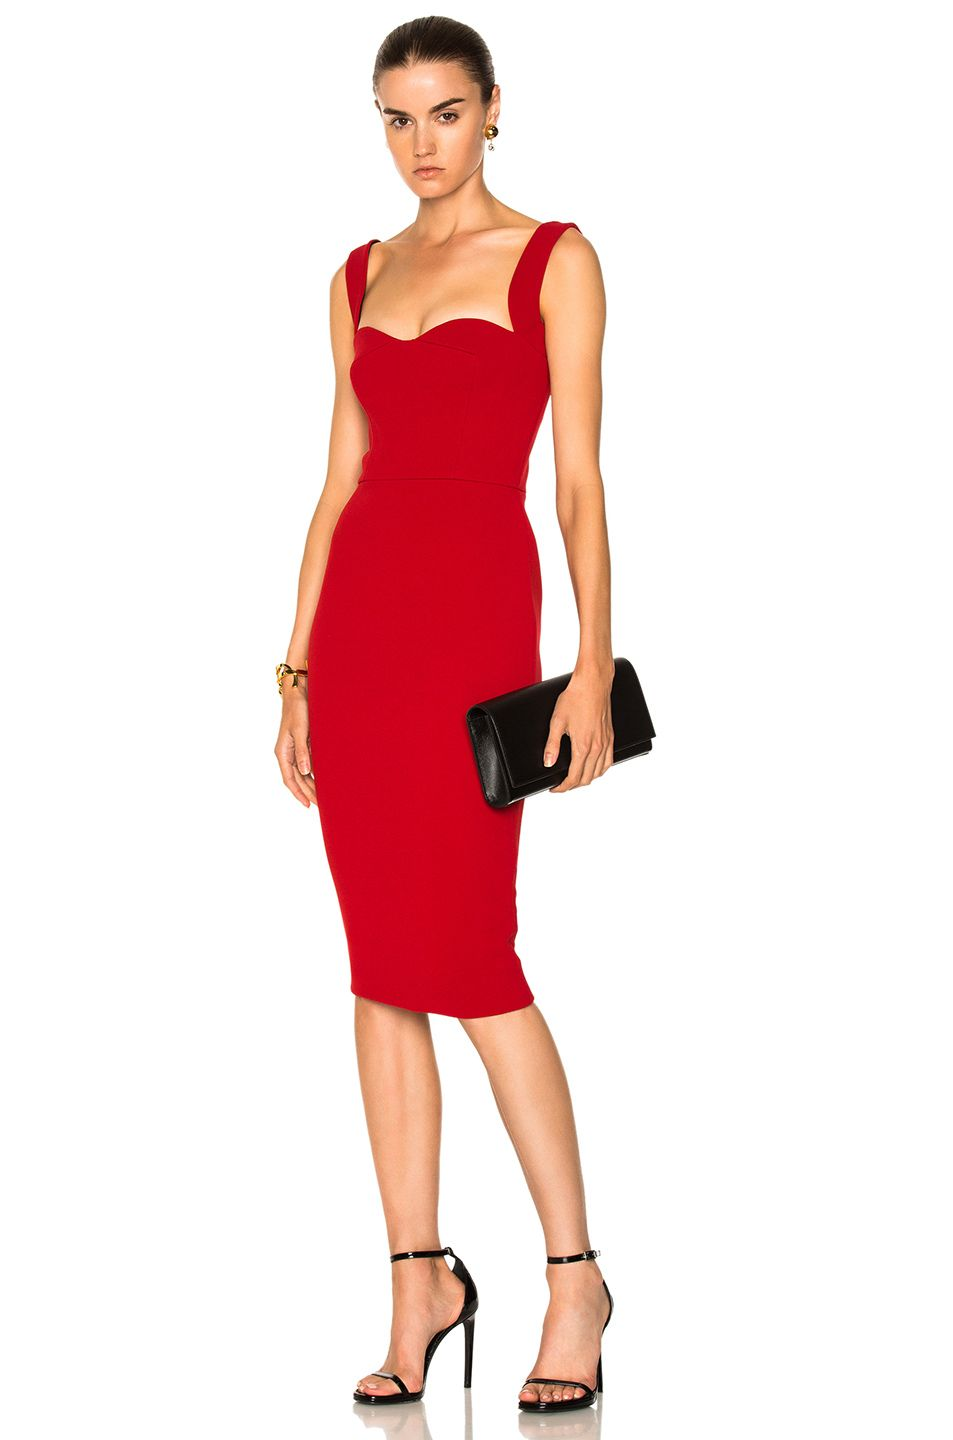 Image 1 Of Victoria Beckham Matte Crepe Curve Cami Fitted Dress In Red Bandage Midi Dress Dresses Red Cocktail Dress [ 1440 x 953 Pixel ]